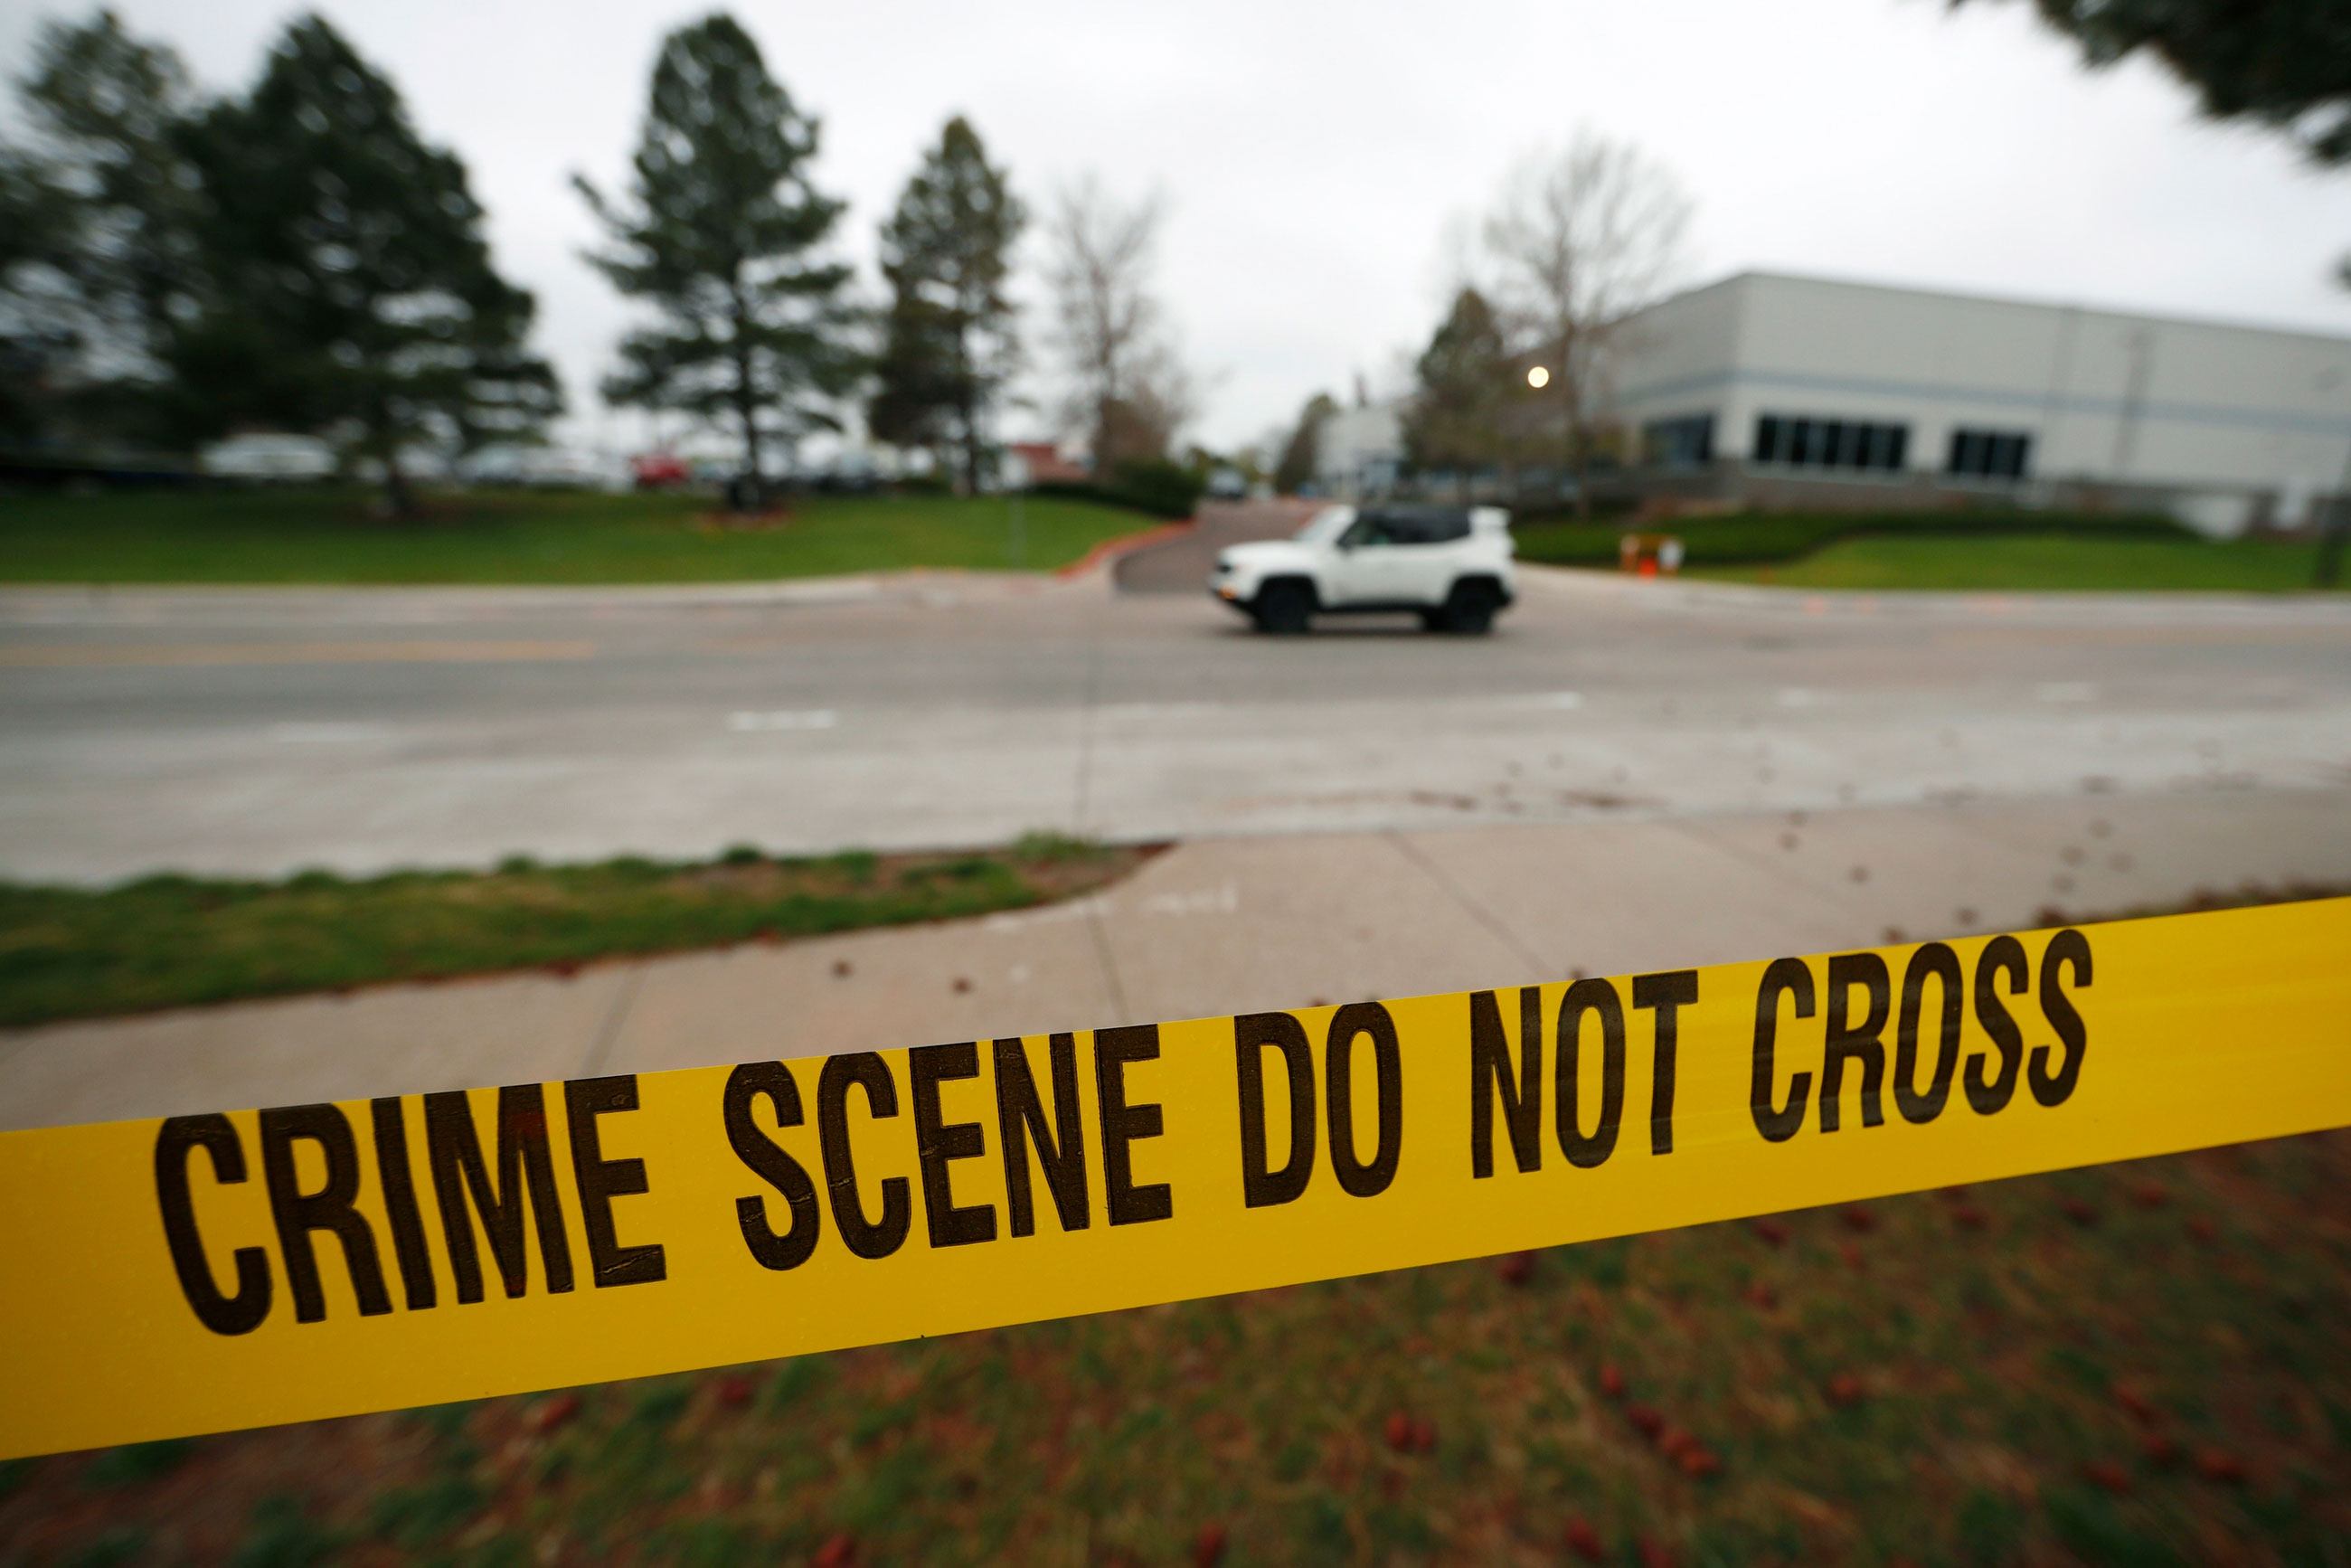 <p>Police tape remains near the scene following Tuesday's shooting at STEM Highlands Ranch school, Wednesday, May 8, 2019, in Highlands Ranch, Colo.</p>